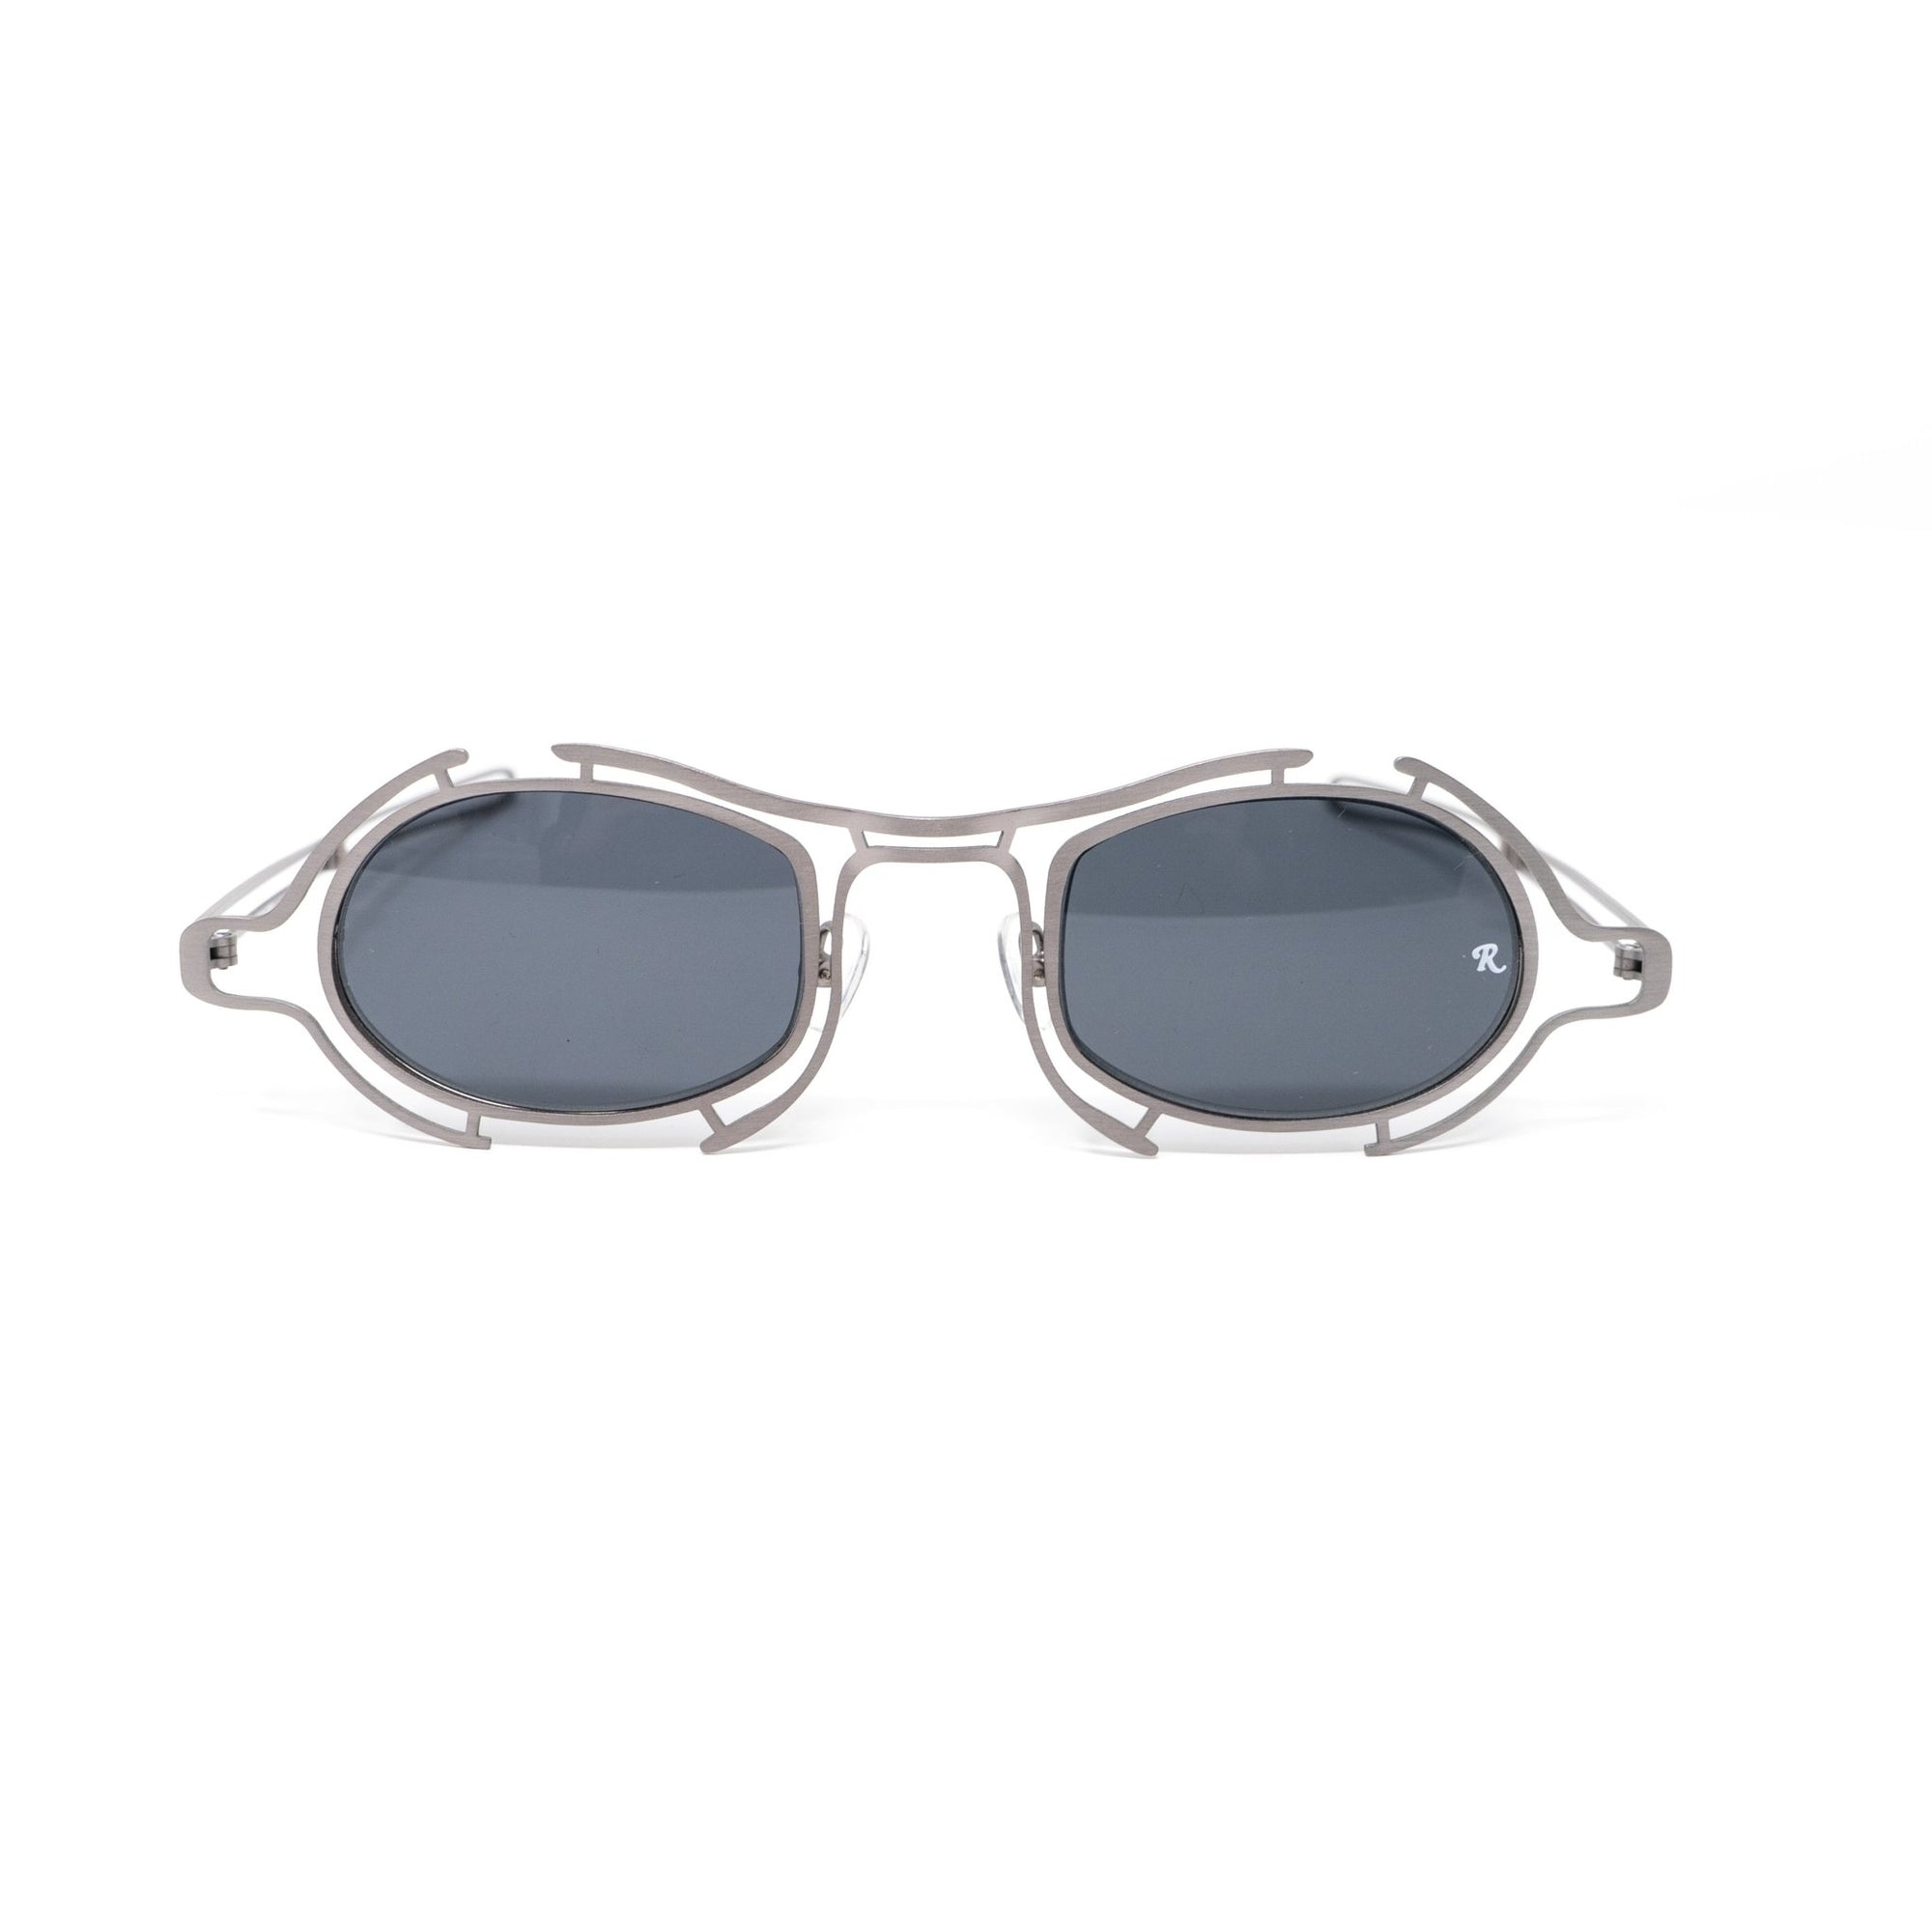 Raf Simons Sunglasses Special Shape Grey and Dark Grey Lenses Category 3 - 9RAF13C2MATTGUN - Watches & Crystals